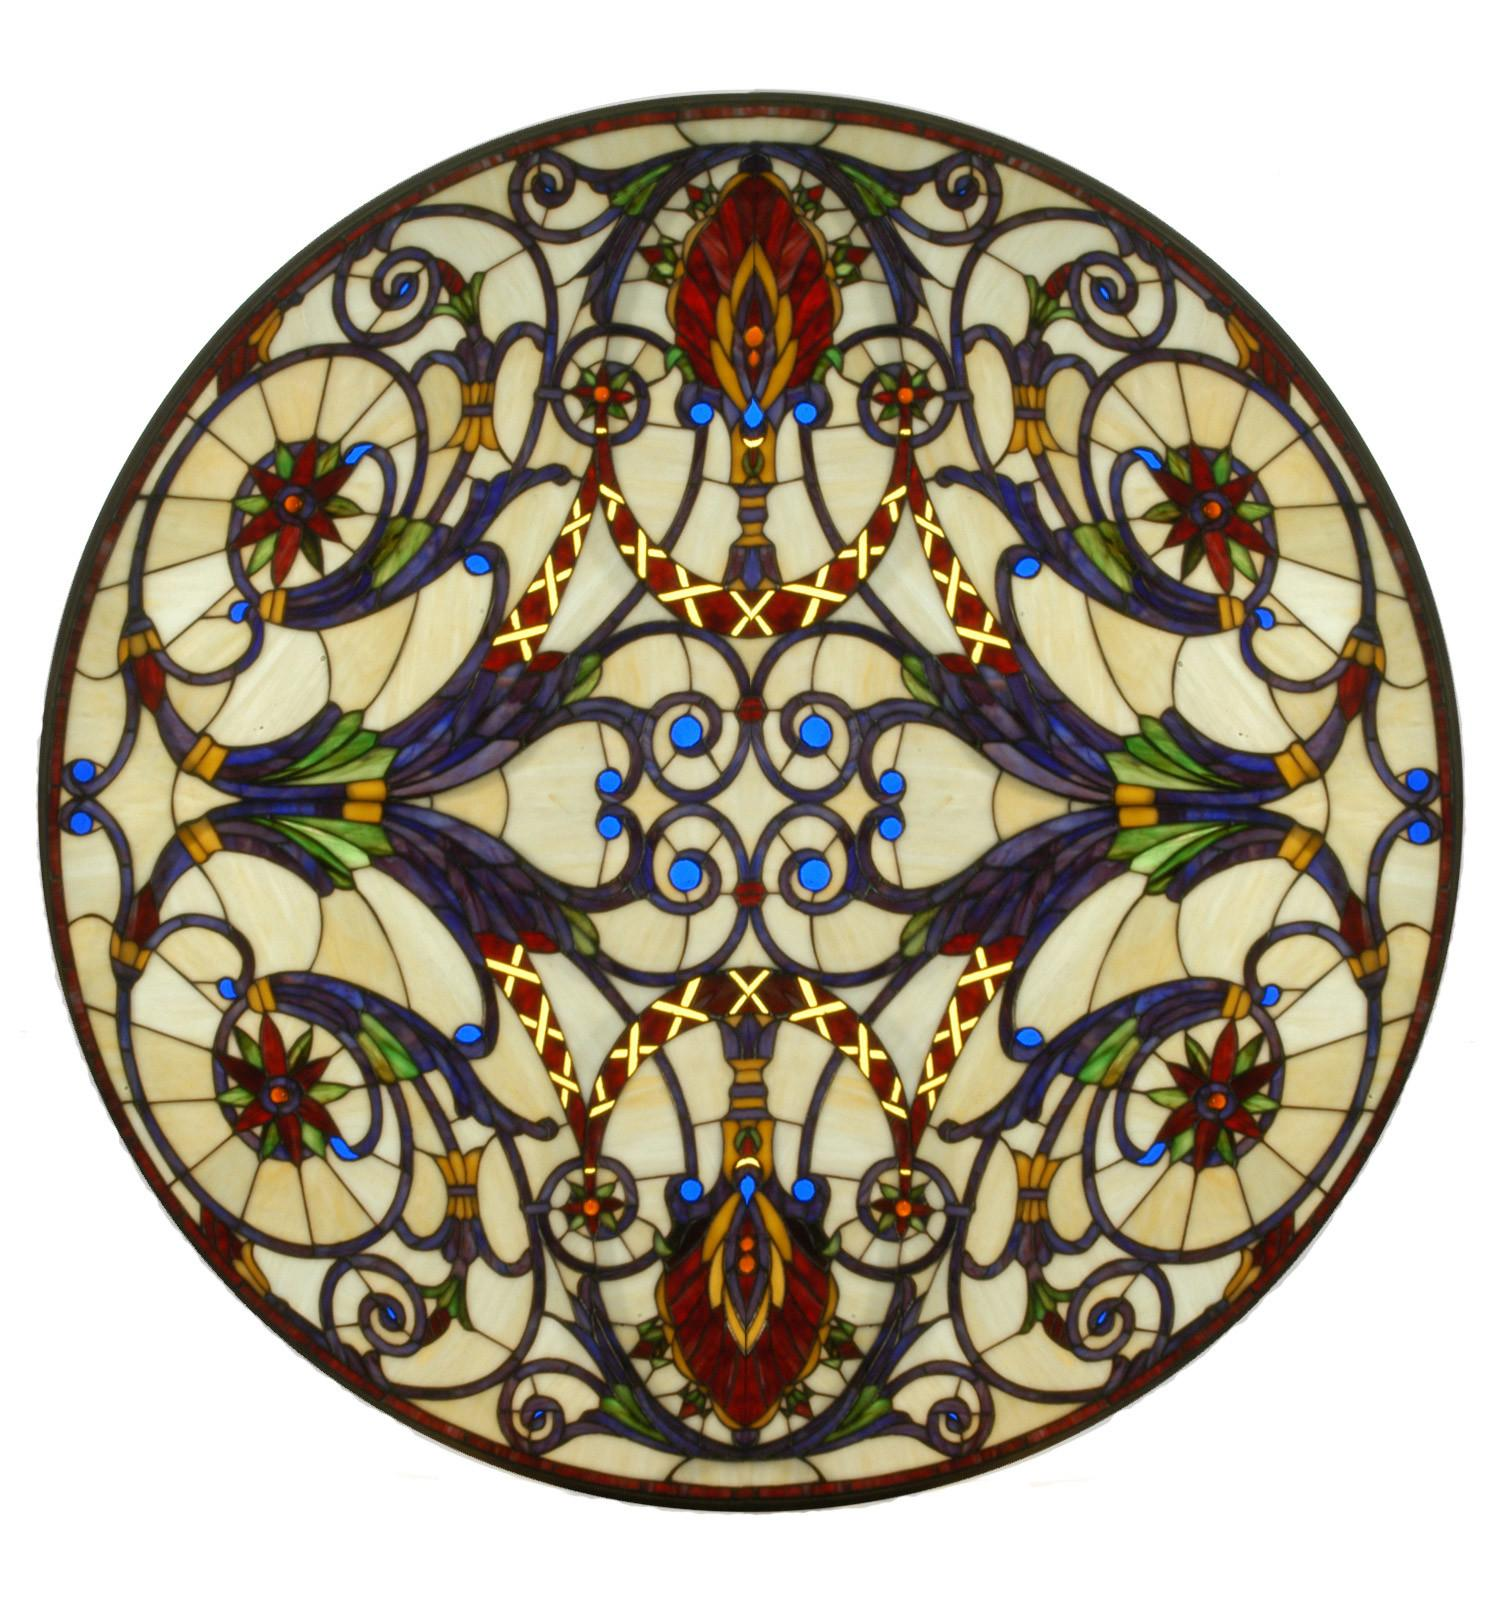 Meyda Tiffany Spiral Medallion Stained Glass Window